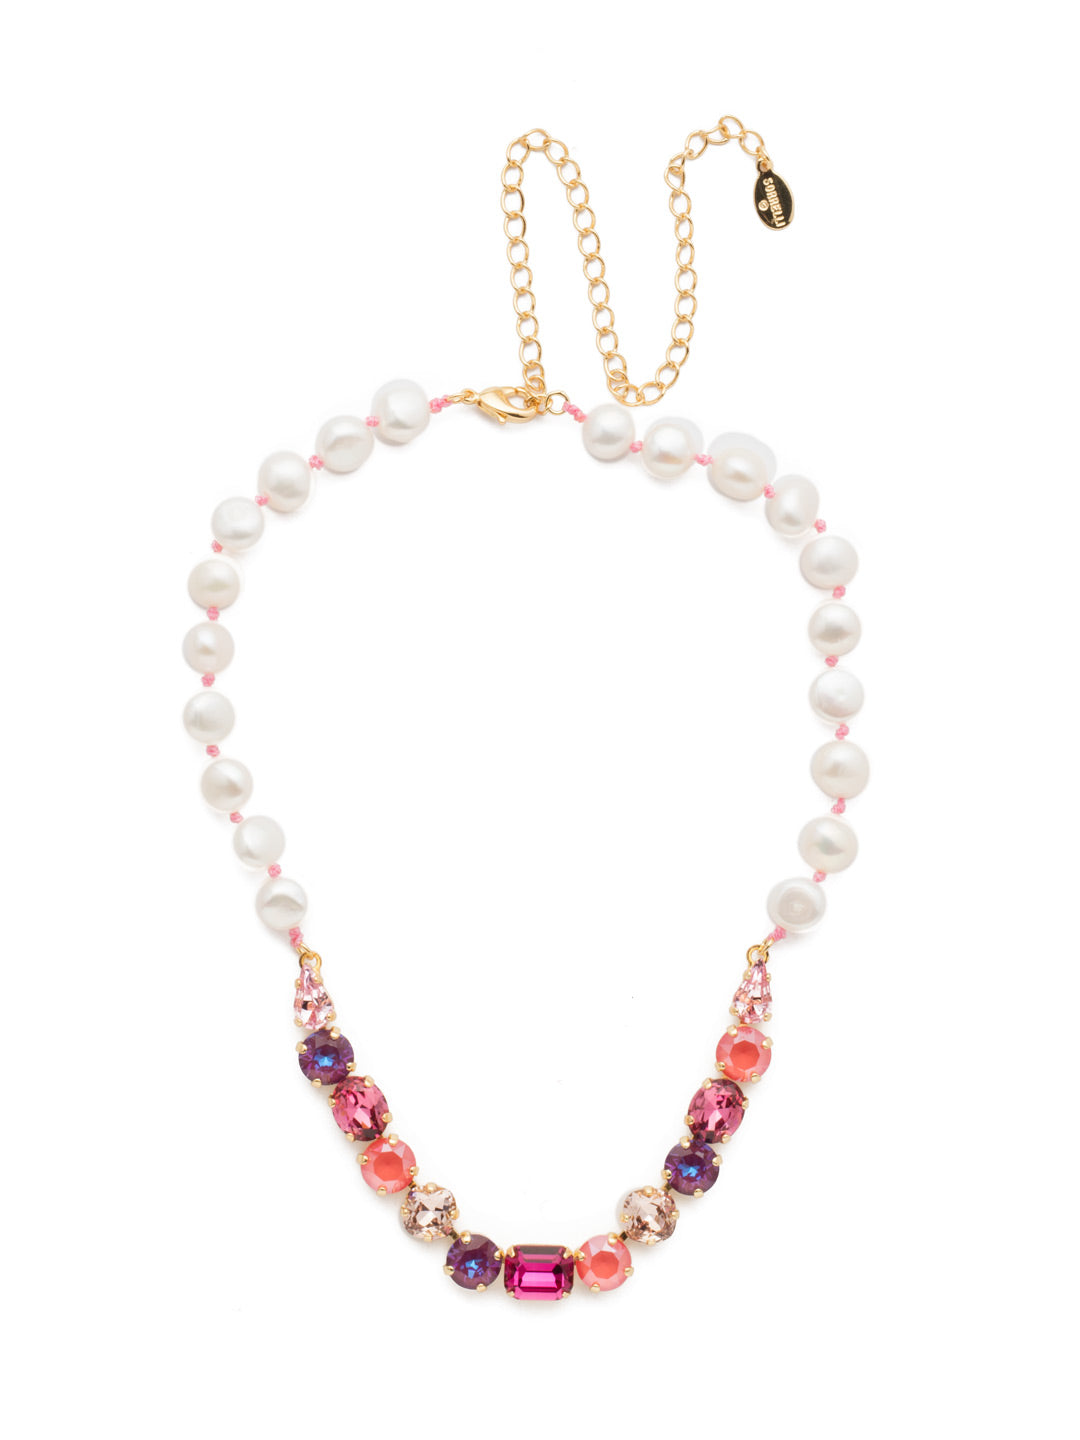 Cadenza Tennis Necklace - NEC14BGBGA